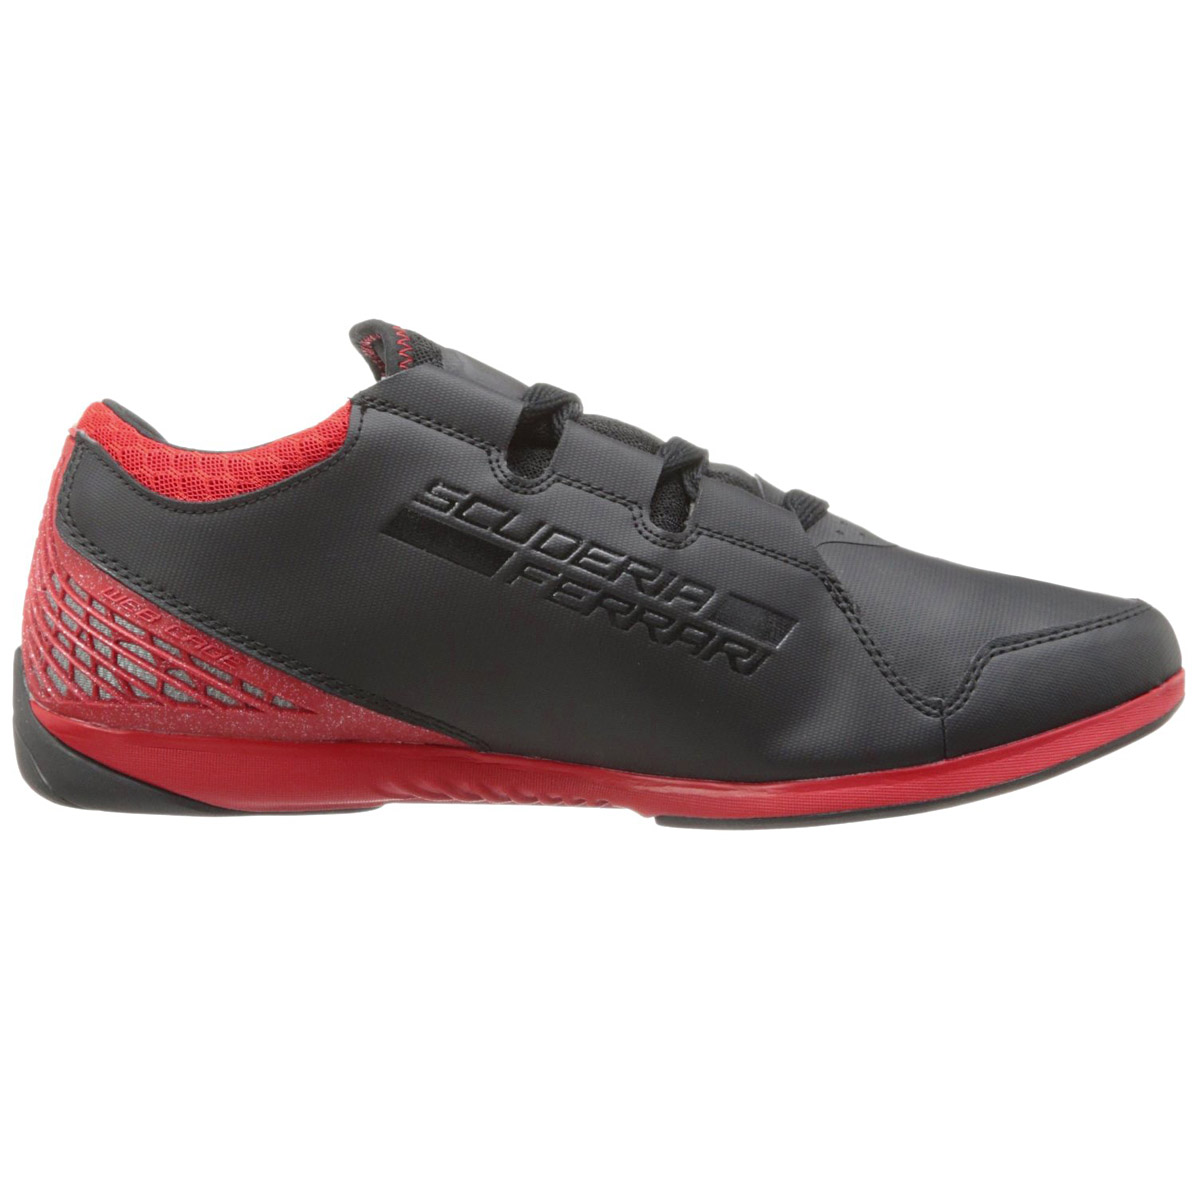 NEW Puma Valorosso Lo SF WebCage 304945-03 Mens Shoes Trainers Sneakers SALE Seasonal price cuts, discount benefits